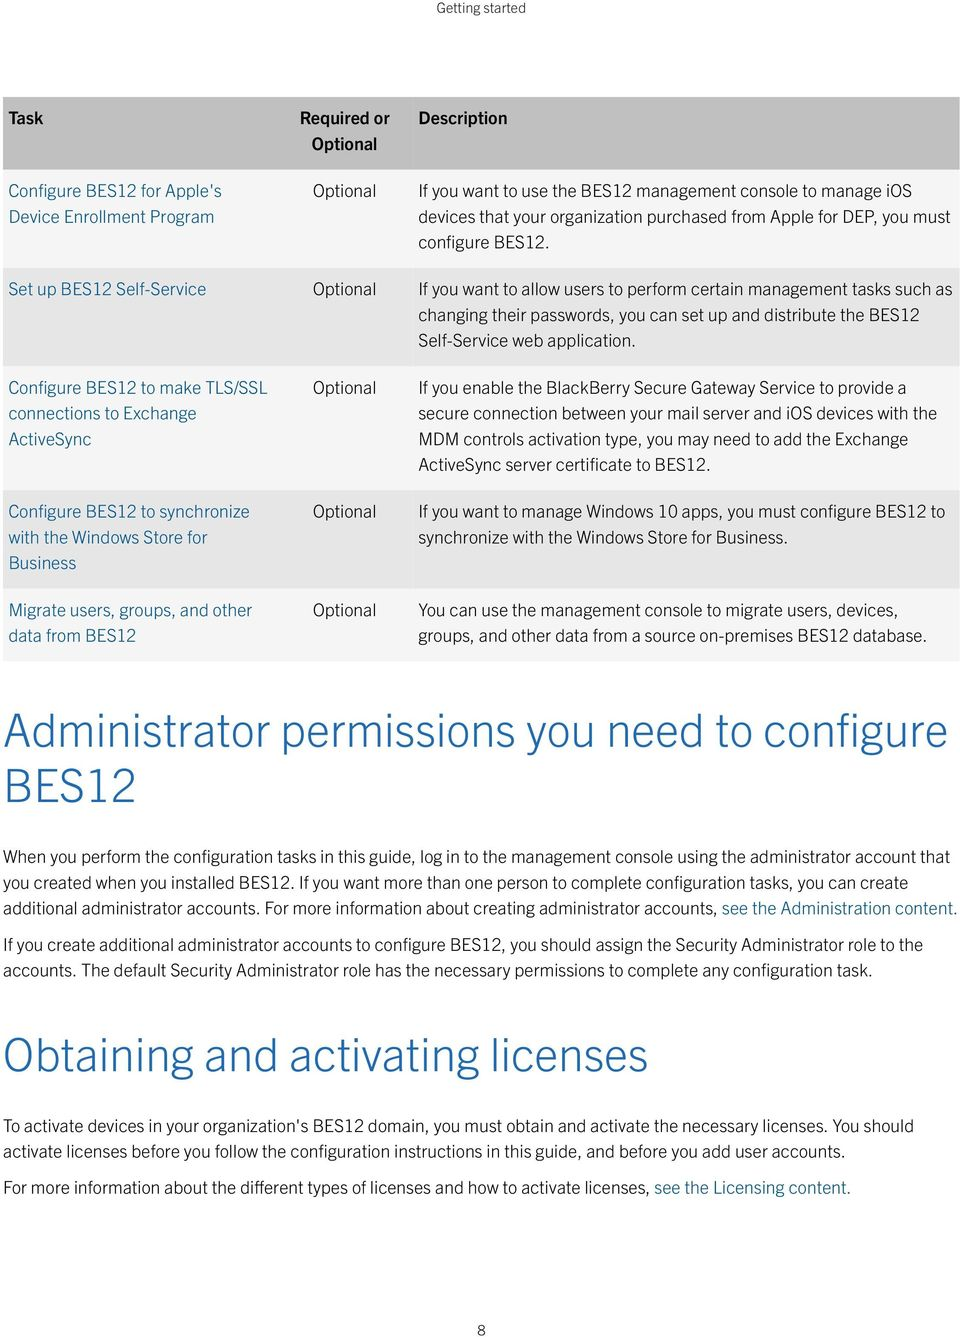 Set up BES12 Self-Service Optional If you want to allow users to perform certain management tasks such as changing their passwords, you can set up and distribute the BES12 Self-Service web